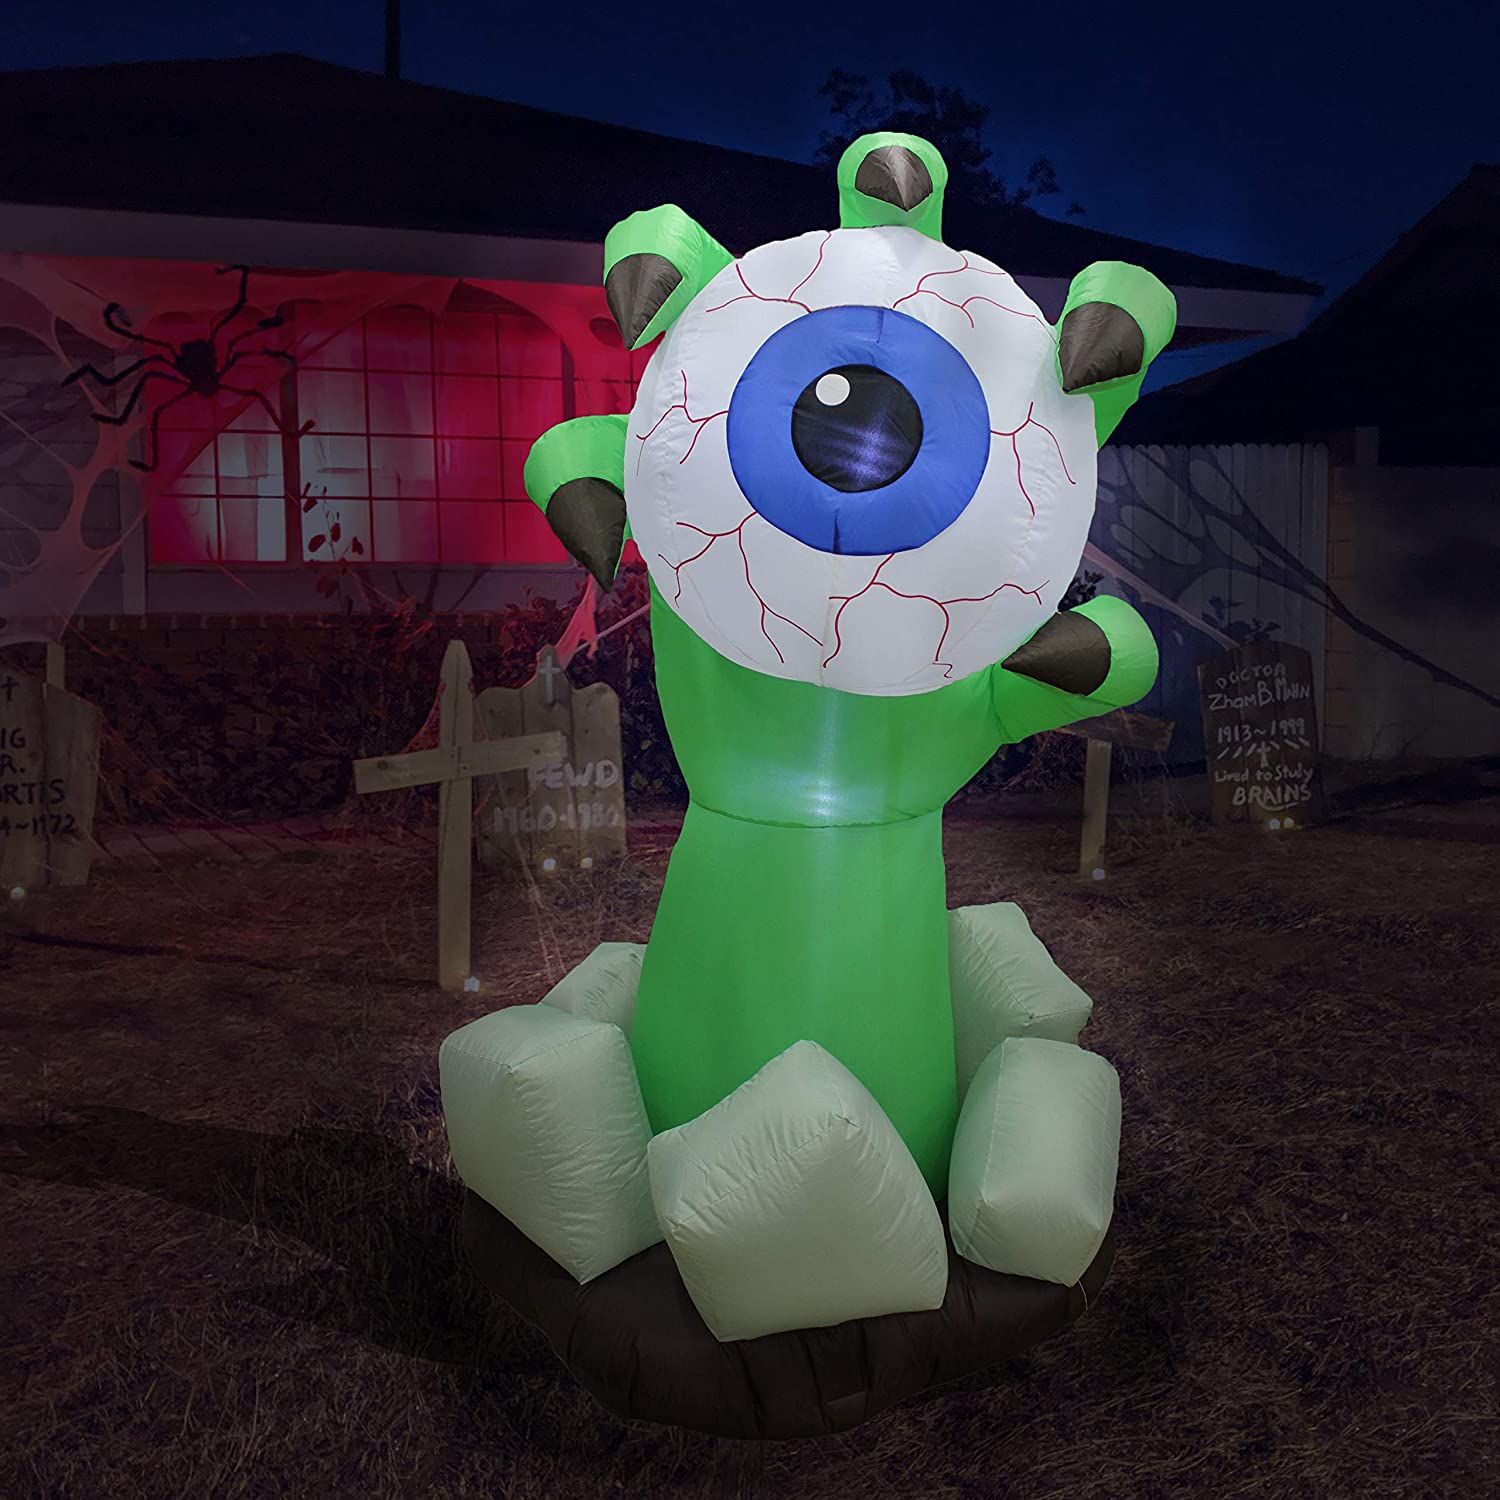 BZB Goods 6 Foot Halloween Inflatable Monster Hand with Eyeball LED Lights Decor Outdoor Indoor Holiday Decorations, Blow up Lighted Yard Decor, Lawn Inflatables Home Family Outside